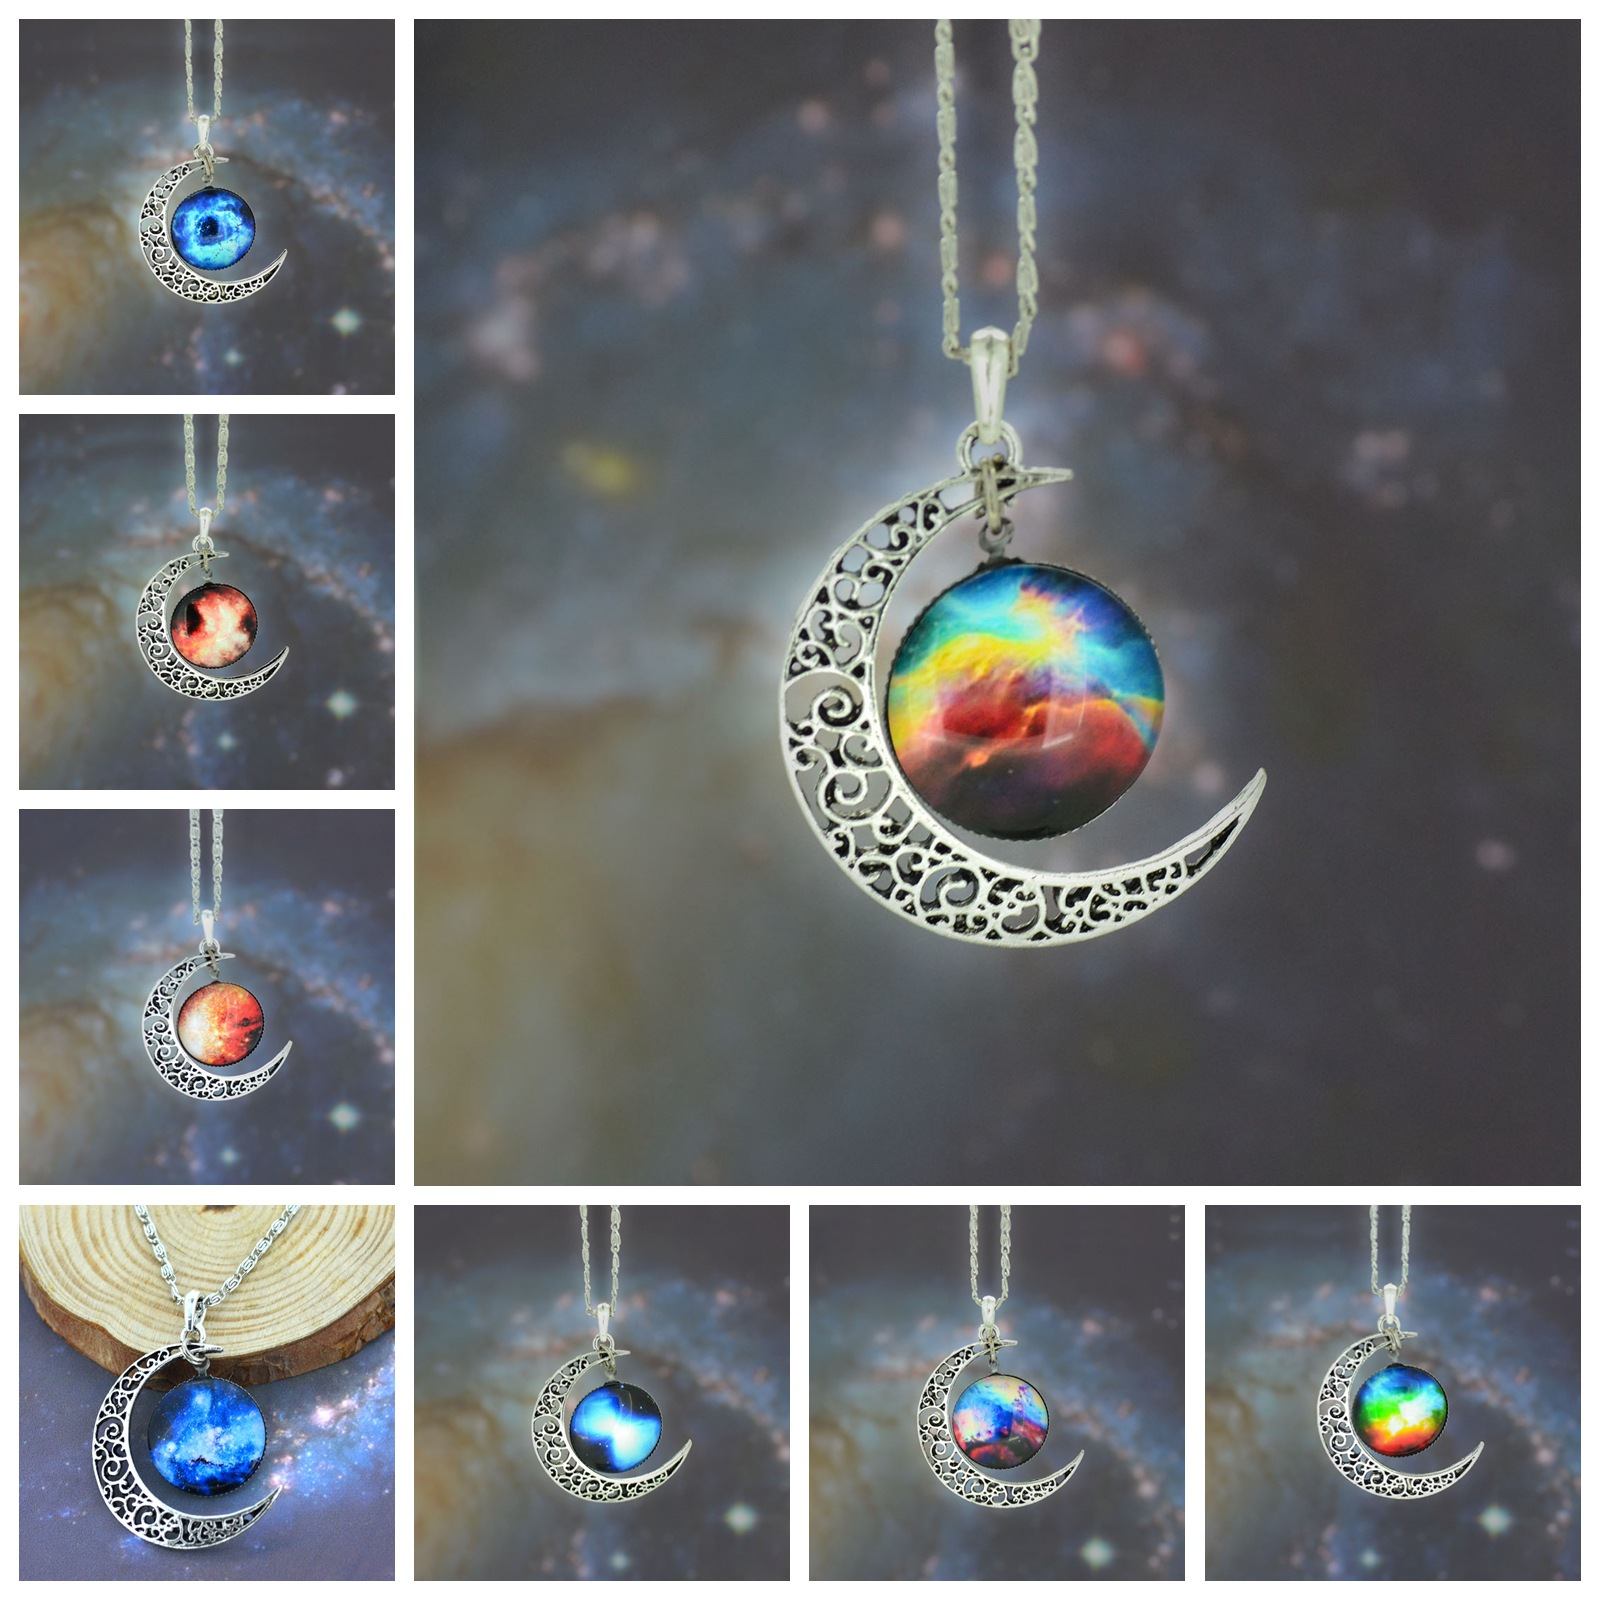 Moon Star Time Artificial Synthetic Gemstone Necklace World Warcraft Obsidian Vintage Wicca Crystal Pendant Chain Punk Necklaces(China (Mainland))